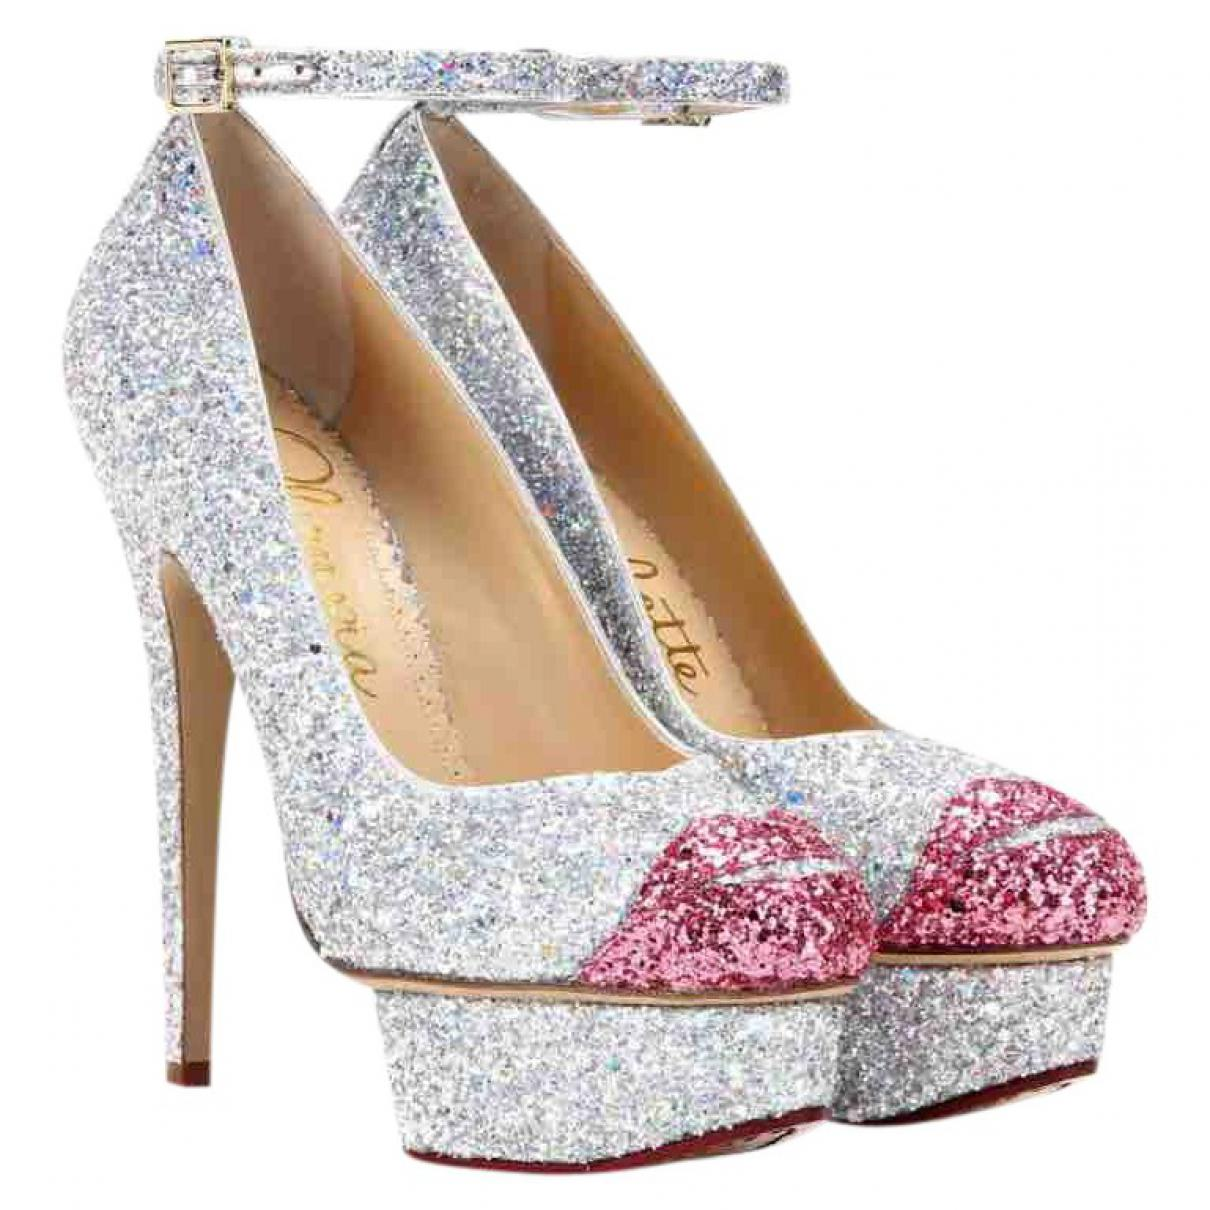 Pre-owned - Glitter heels Charlotte Olympia nKMtGBS